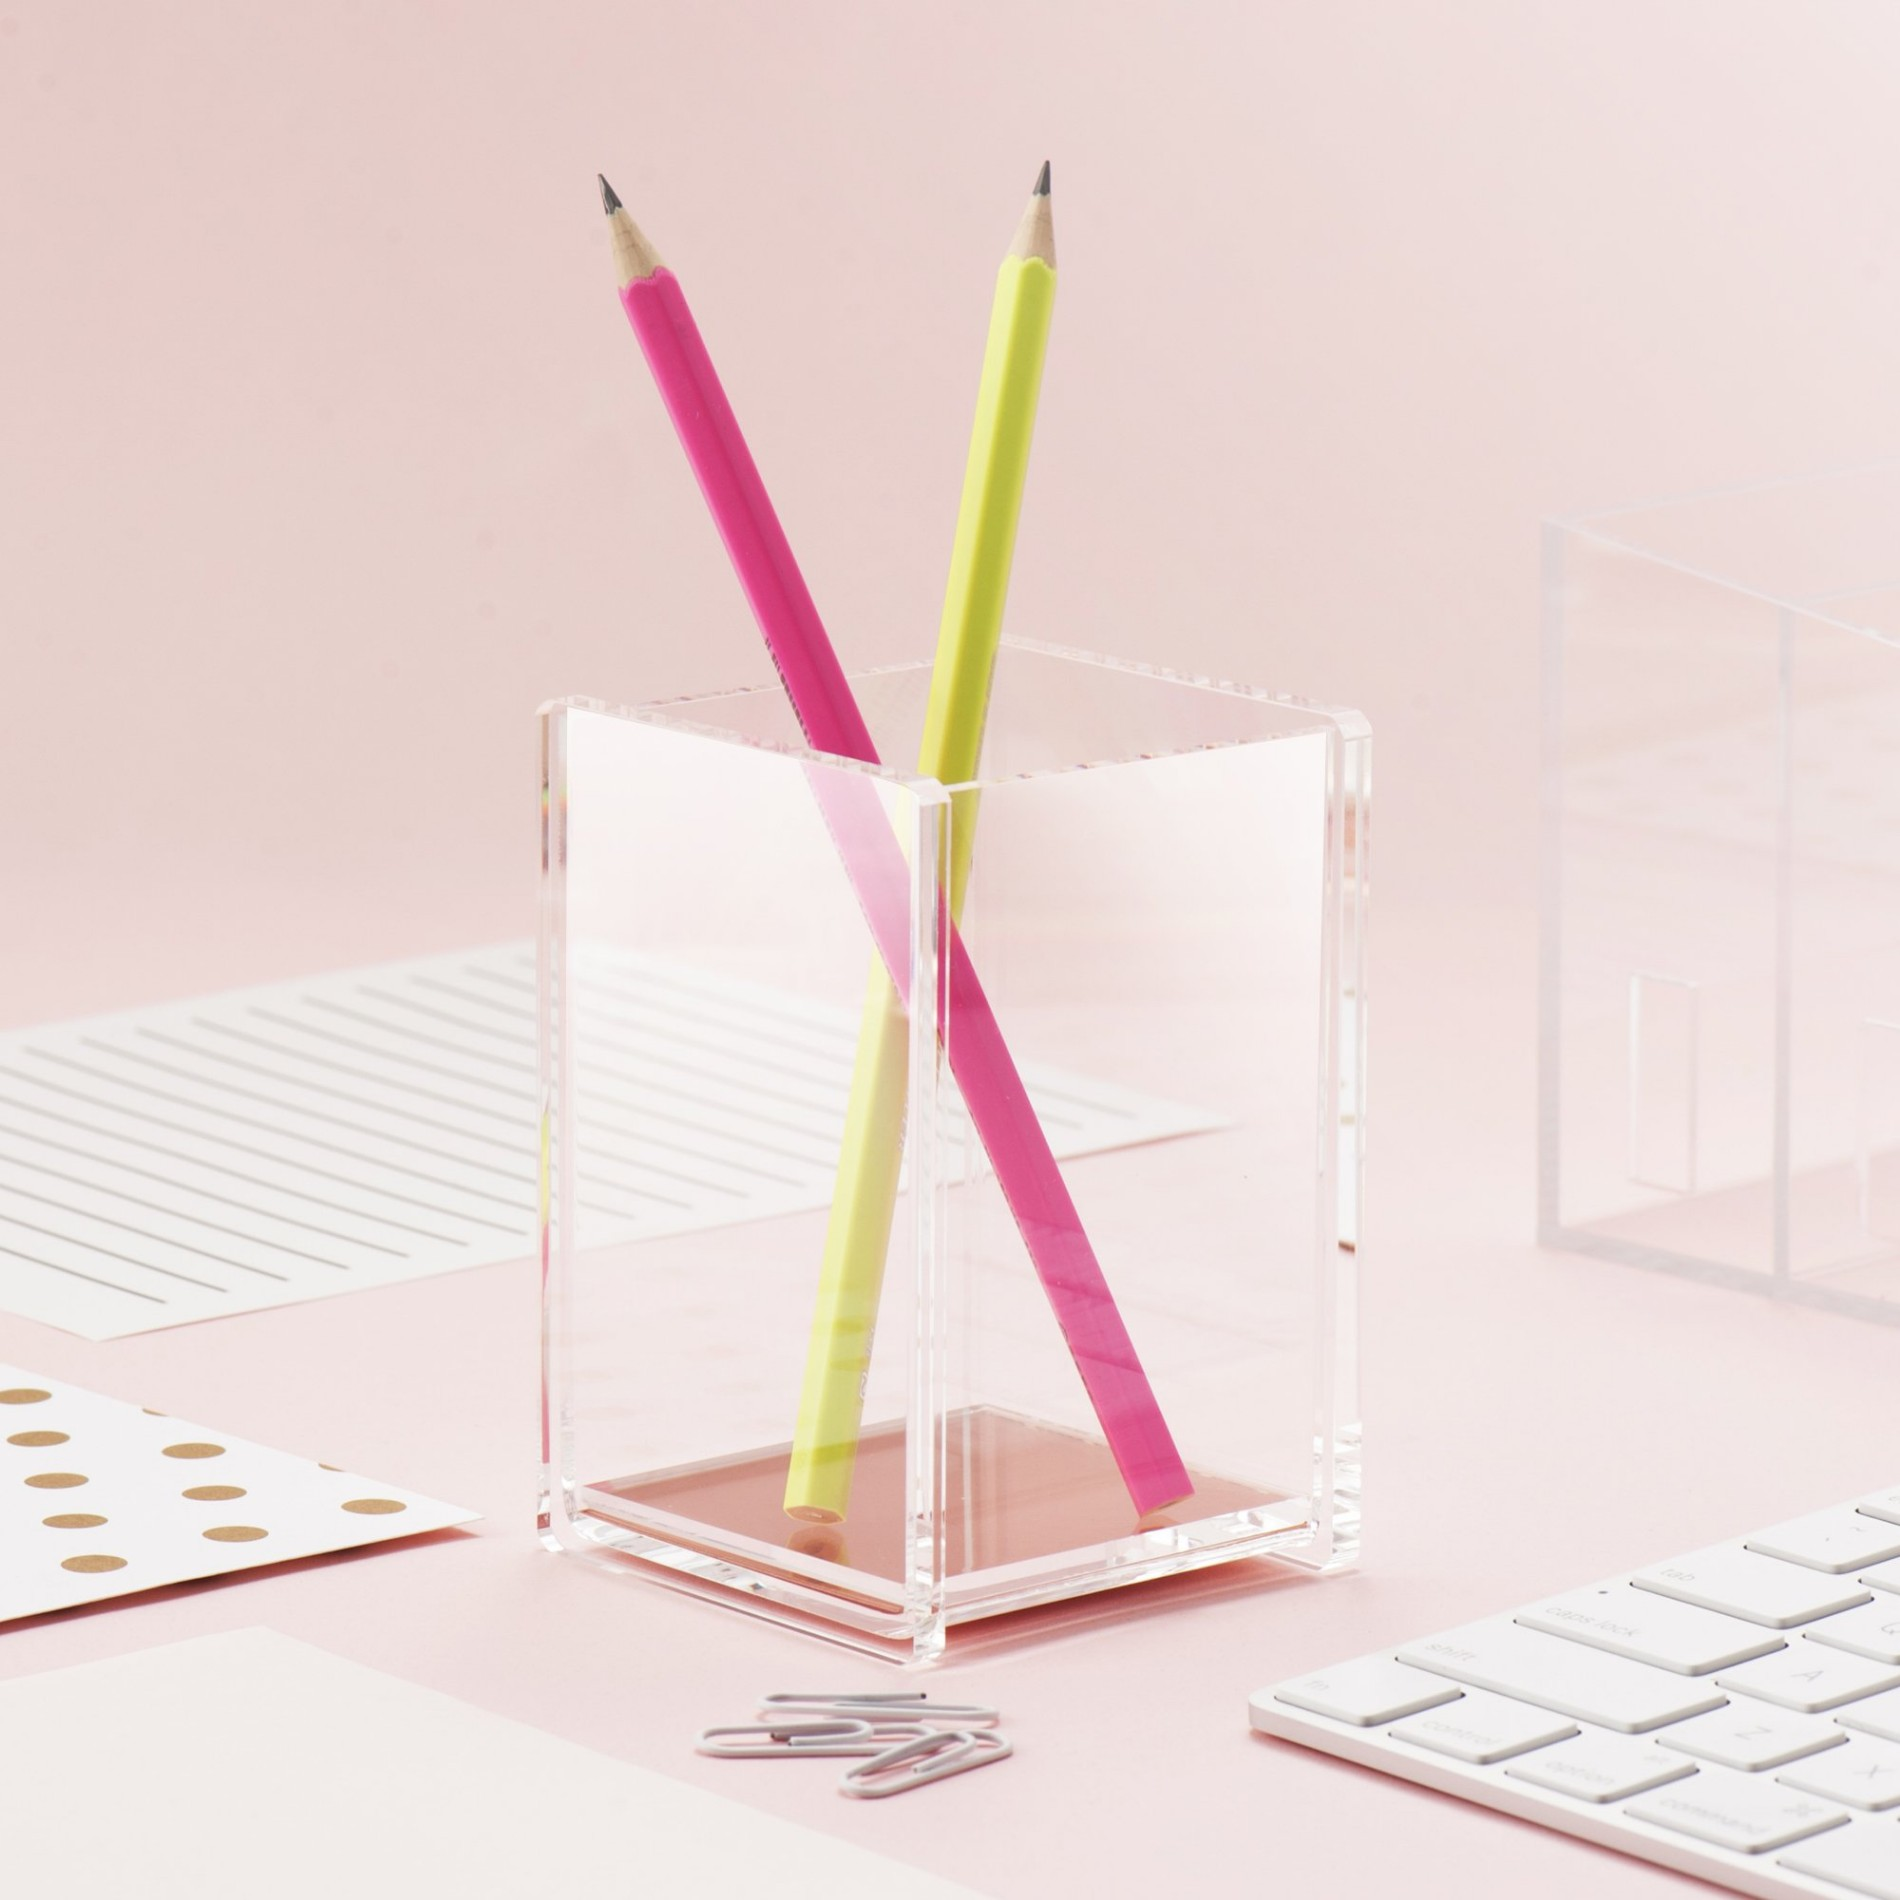 Clear Acrylic Pen Holder Stand Manufacturers, Clear Acrylic Pen Holder Stand Factory, Supply Clear Acrylic Pen Holder Stand